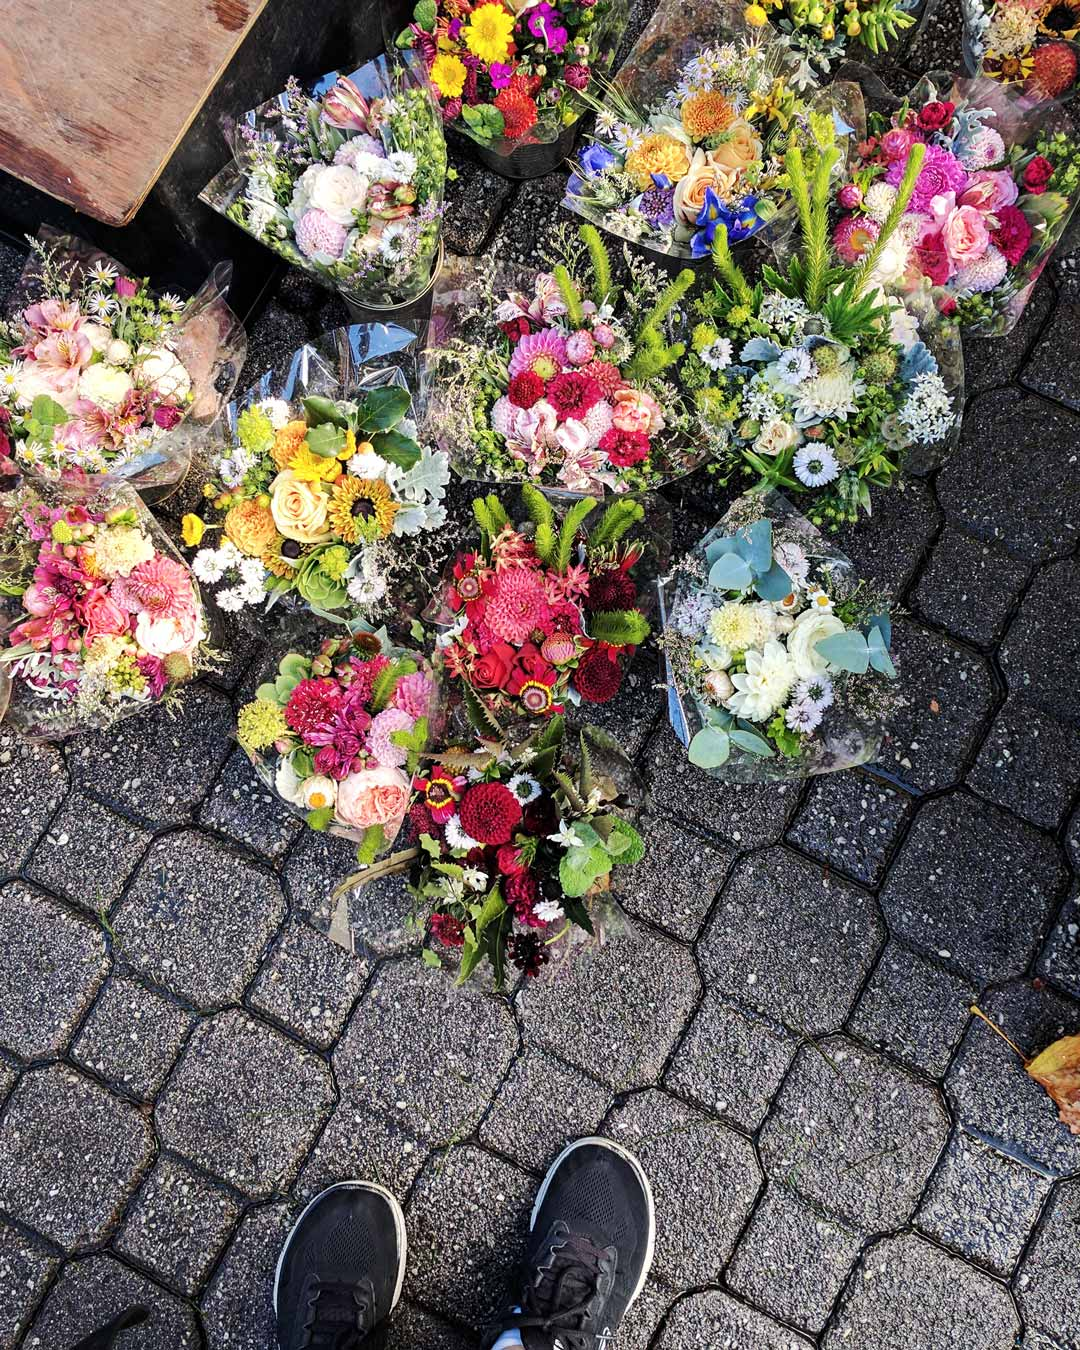 Fresh flowers at Salamanca Markets in Hobart, Tasmania